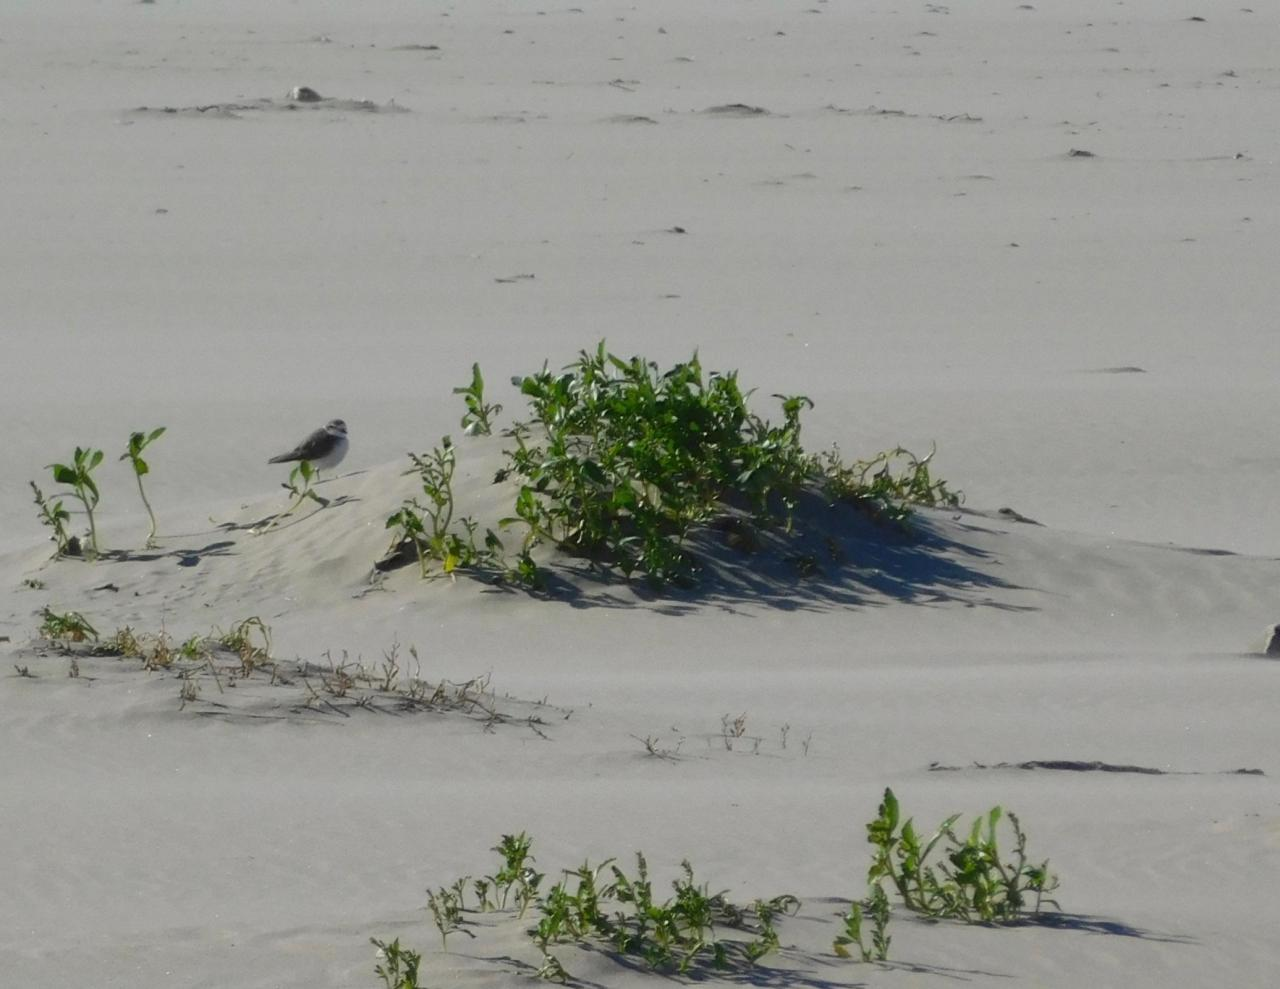 Western Snowy Plover sheltering from north wind